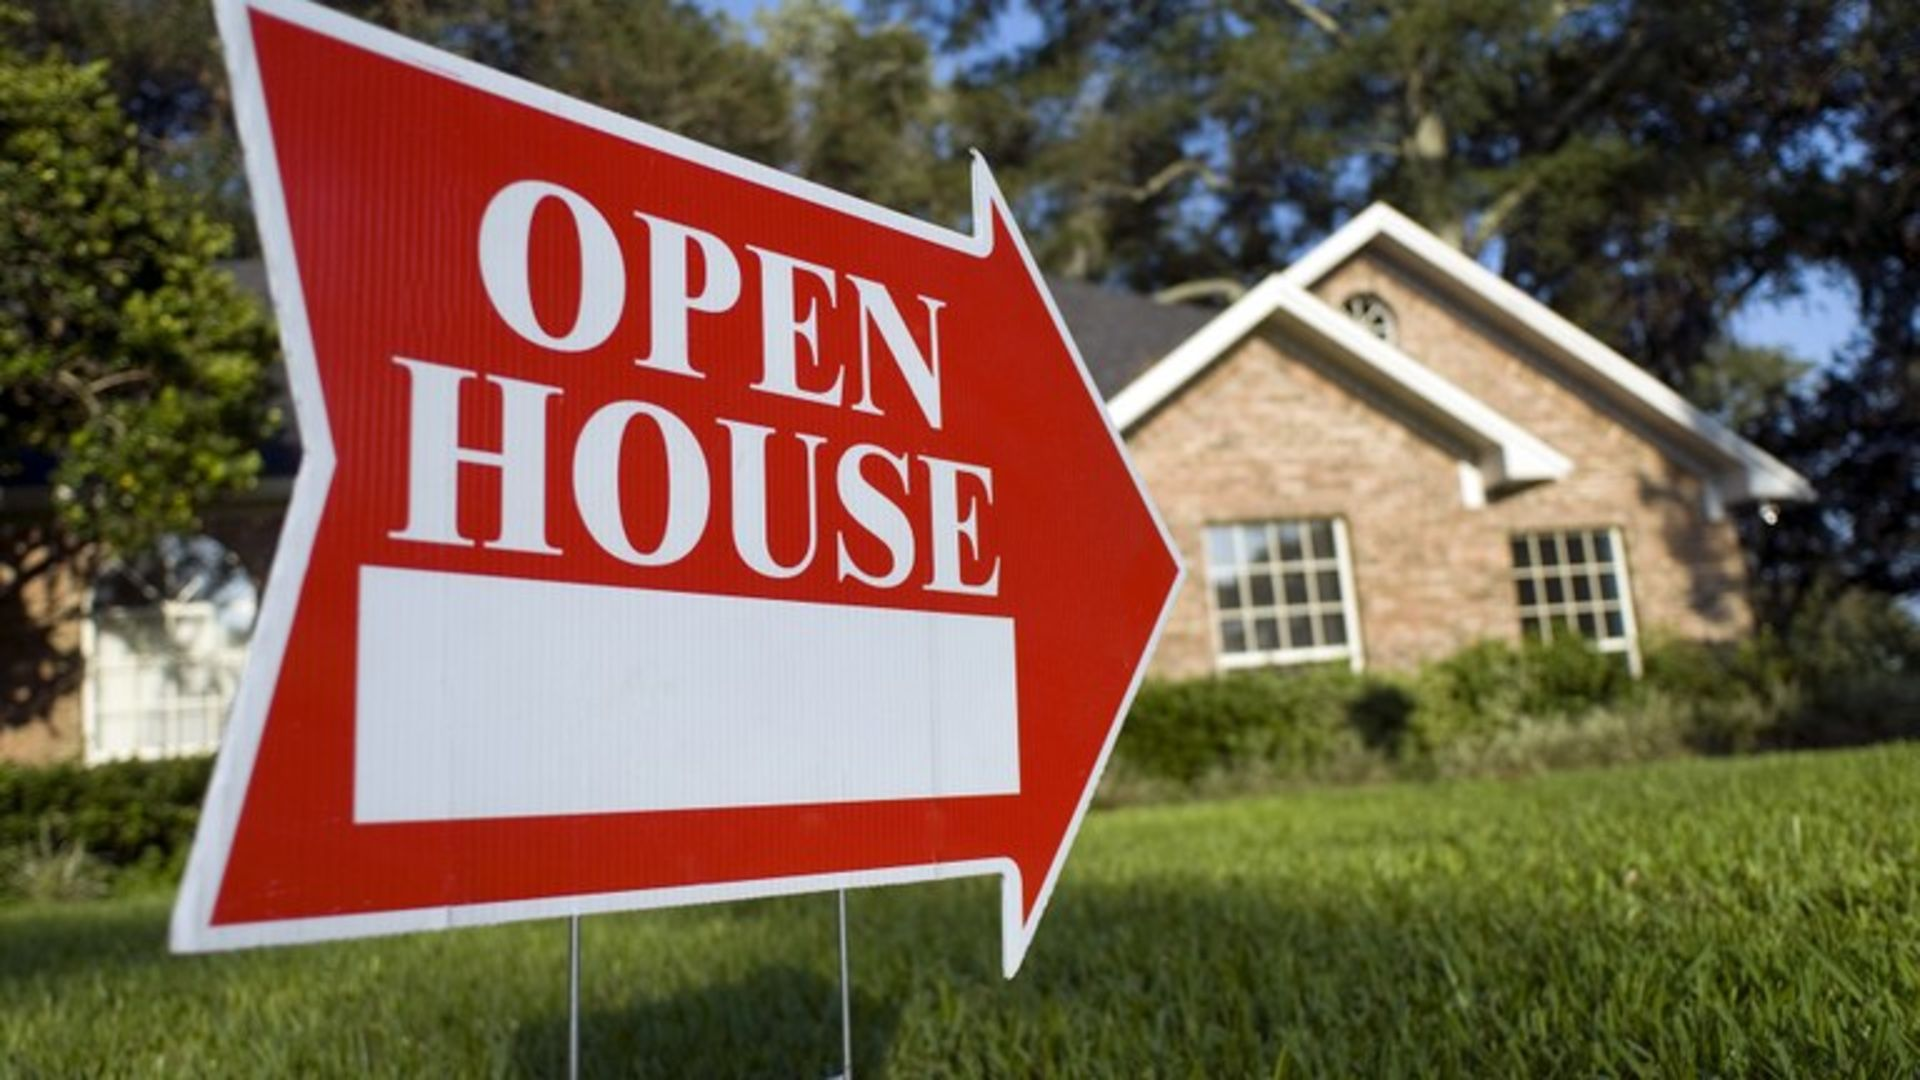 Keller Williams Newtown Open Houses January 5th- January 6th